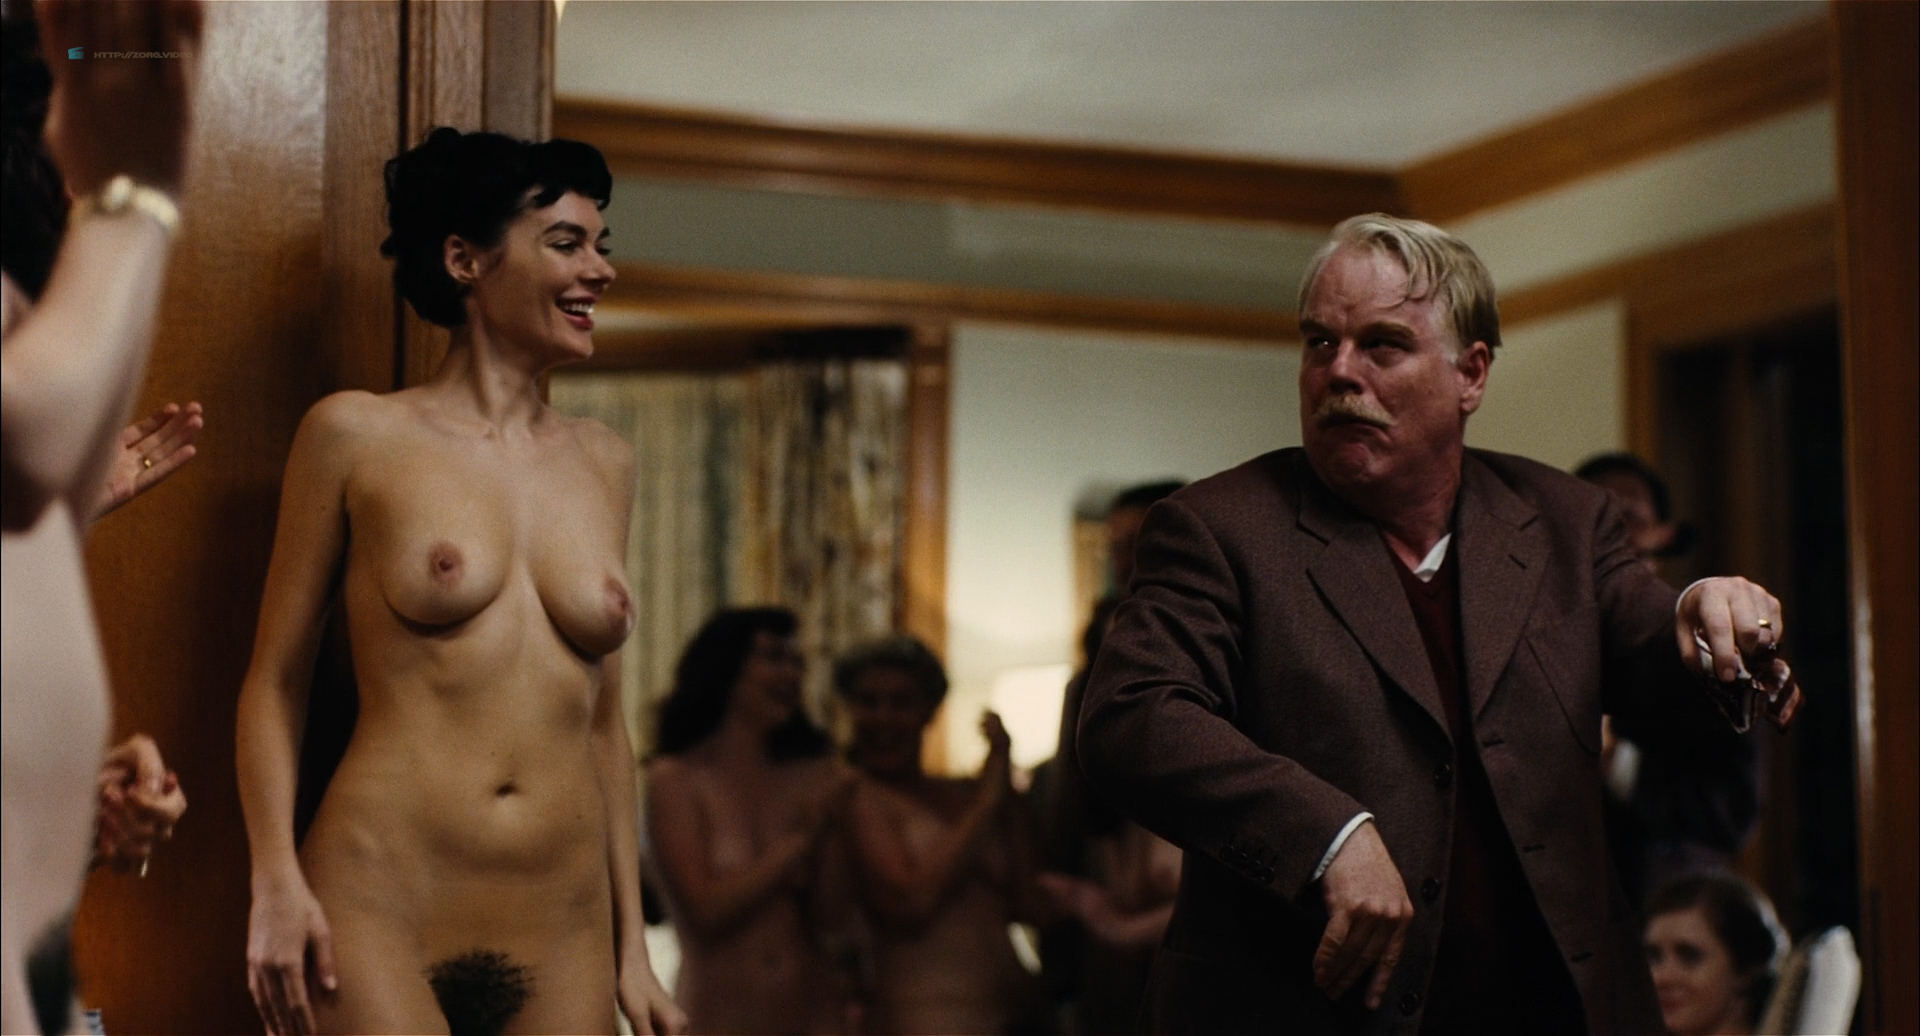 Amy Ferguson nude topless, Liz Clare, Katie Boland nude dancing Amy Adams nude covered and Jennifer Neala Page nude sex - The Master (2012) HD 1080p BluRay (16)